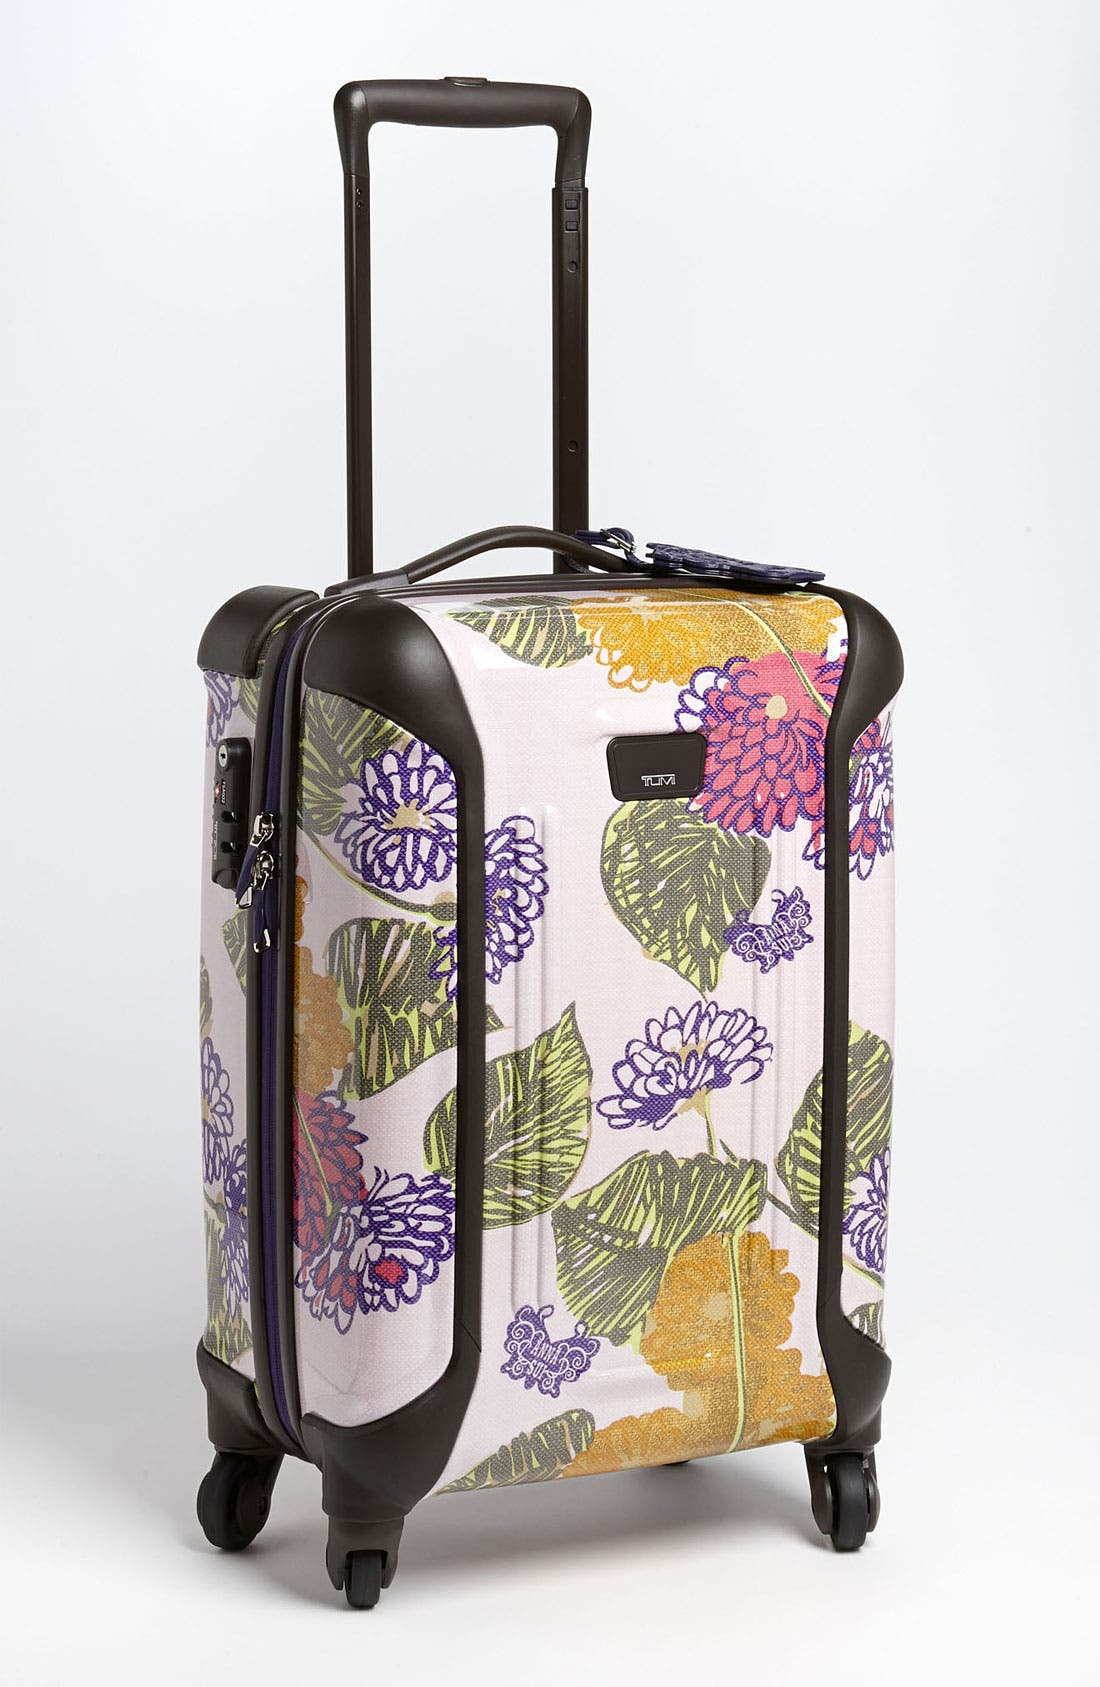 Alternate Image 1 Selected - Tumi 'Vapor™ - Anna Sui' International Carry-On Bag